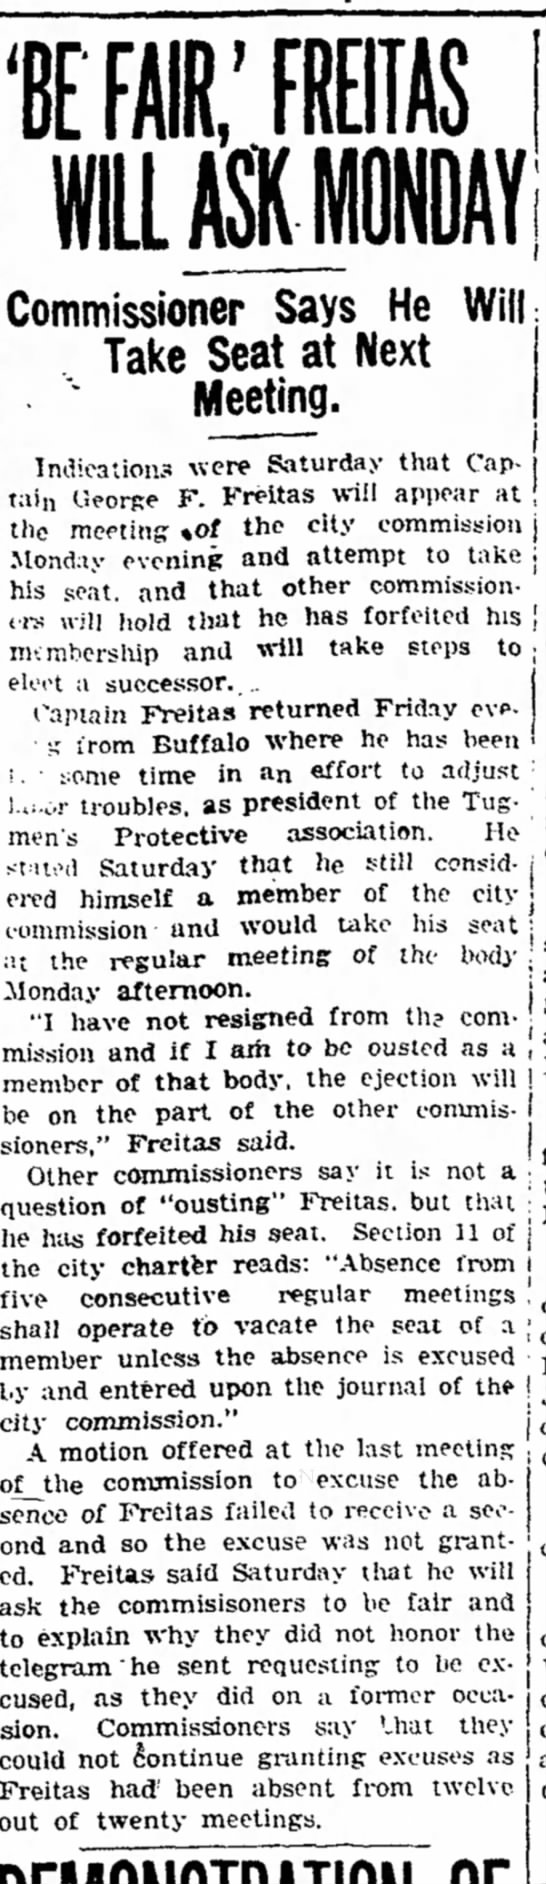 The Sandusky Star-Journal (Sandusky, Ohio), 22 May 1920, 